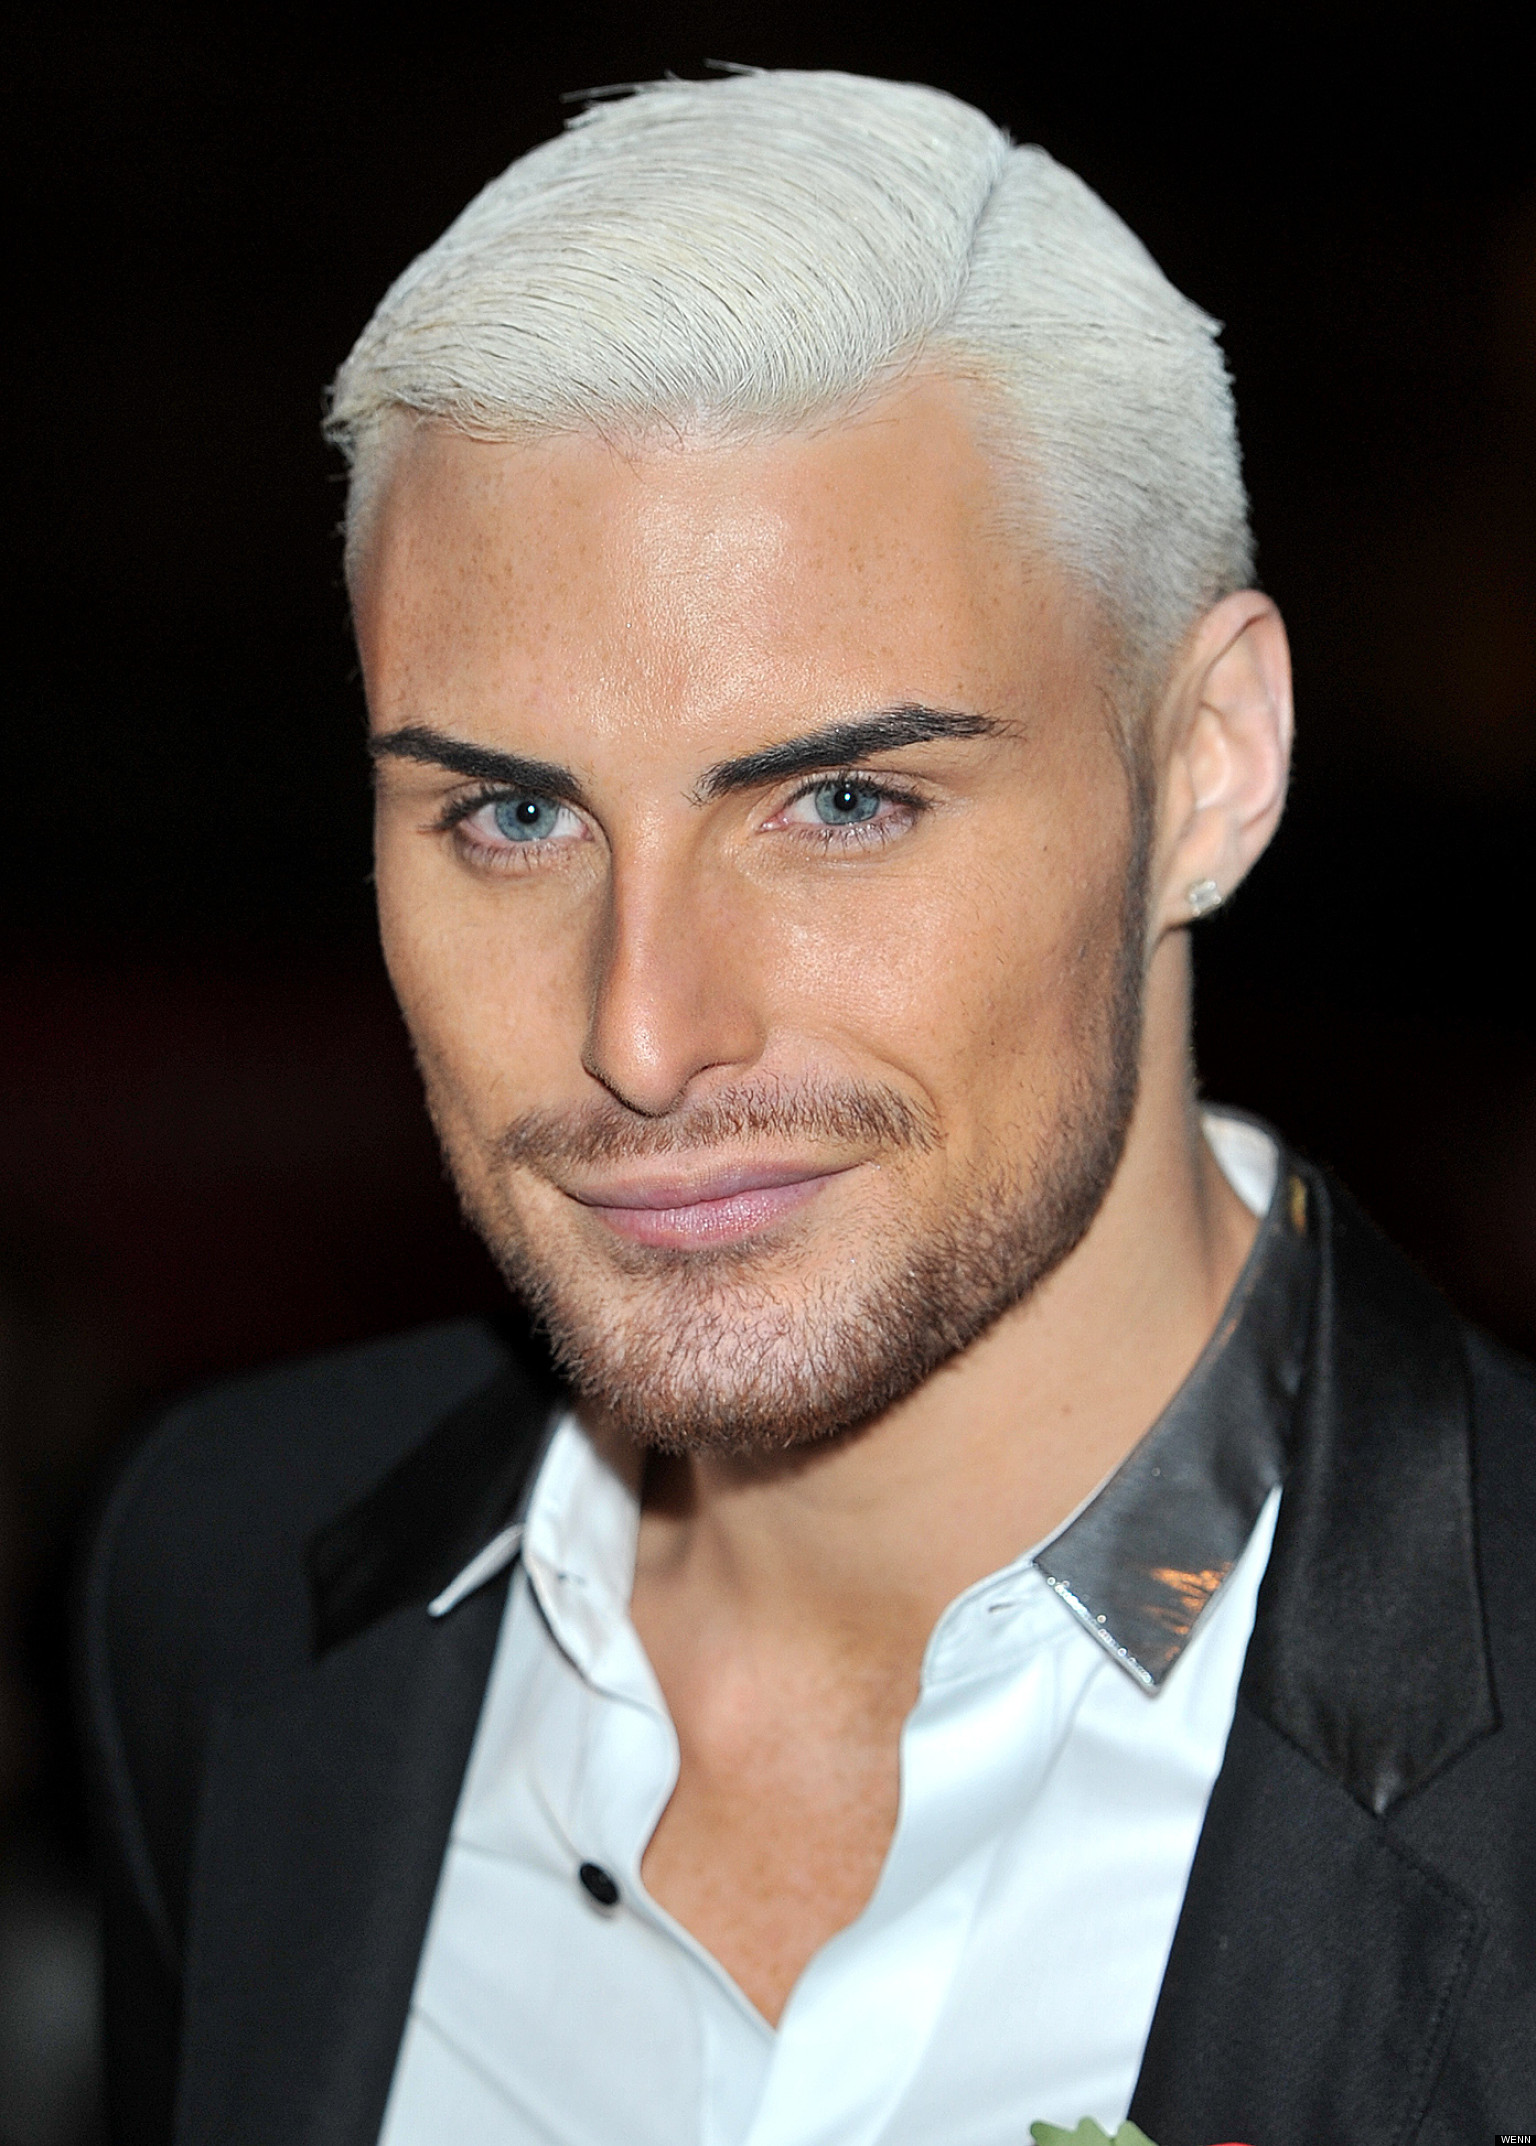 Contact the uk's leading speaker bureau (ft) for conference, motivational, after dinner speakers, presenters & performers. 'X Factor': Rylan Clark Blasts Gary Barlow For Being 'Out ...